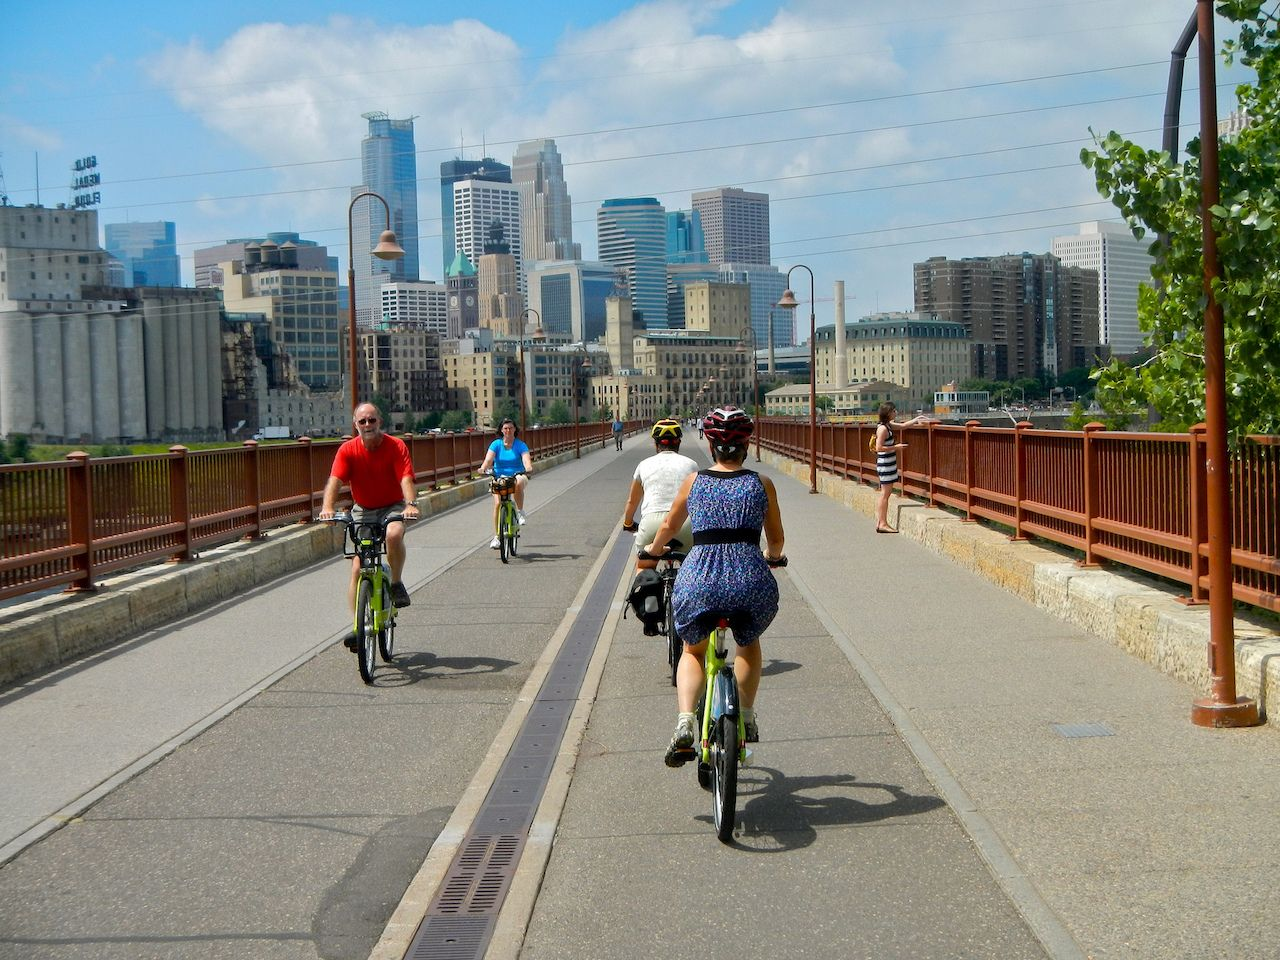 Minneapolis is an underrated US city. Here's why.